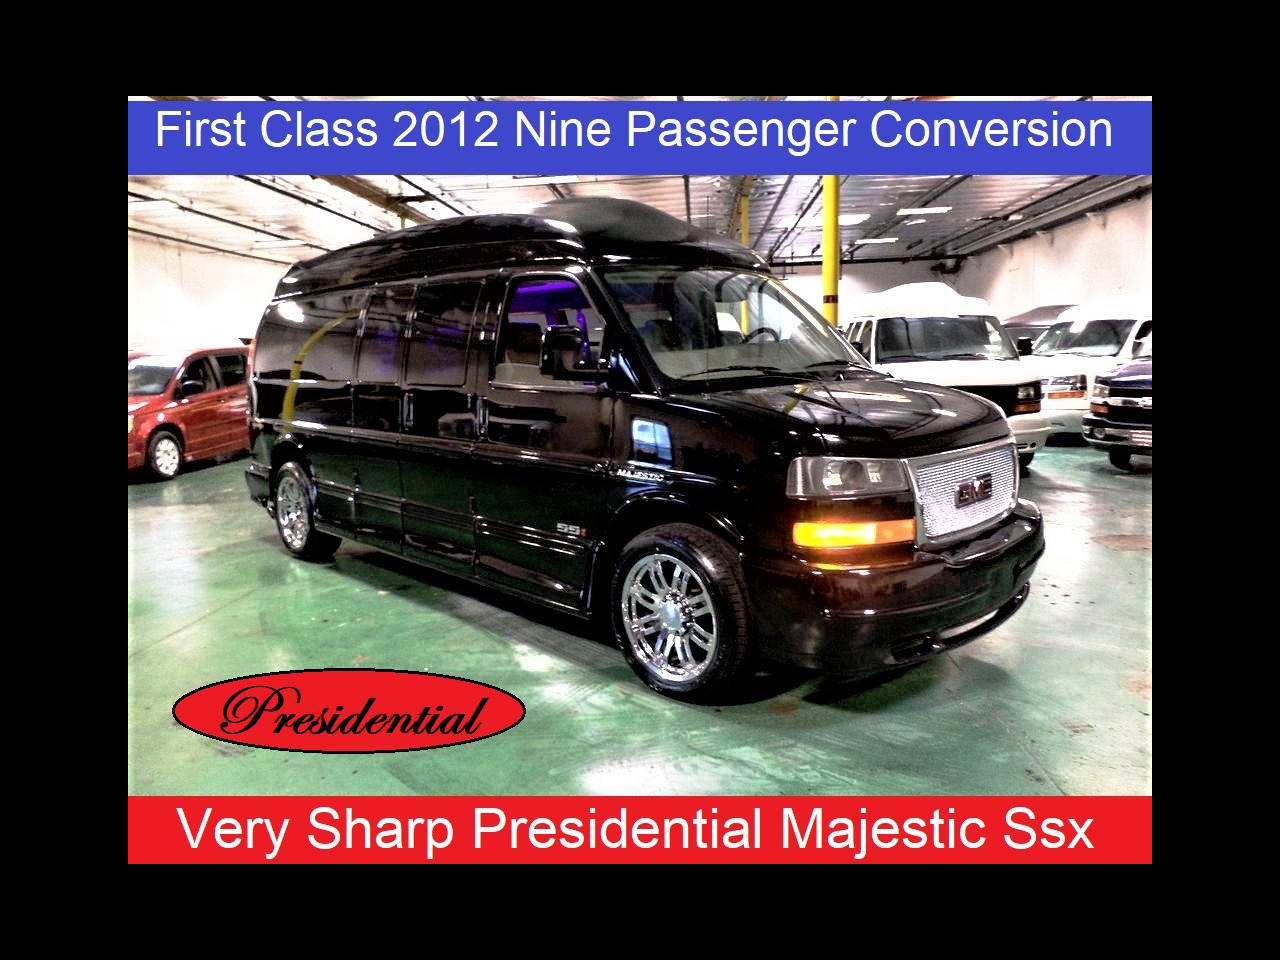 2012 GMC Savana Presidential Majestic Ssx 9 Passenger Conversion V